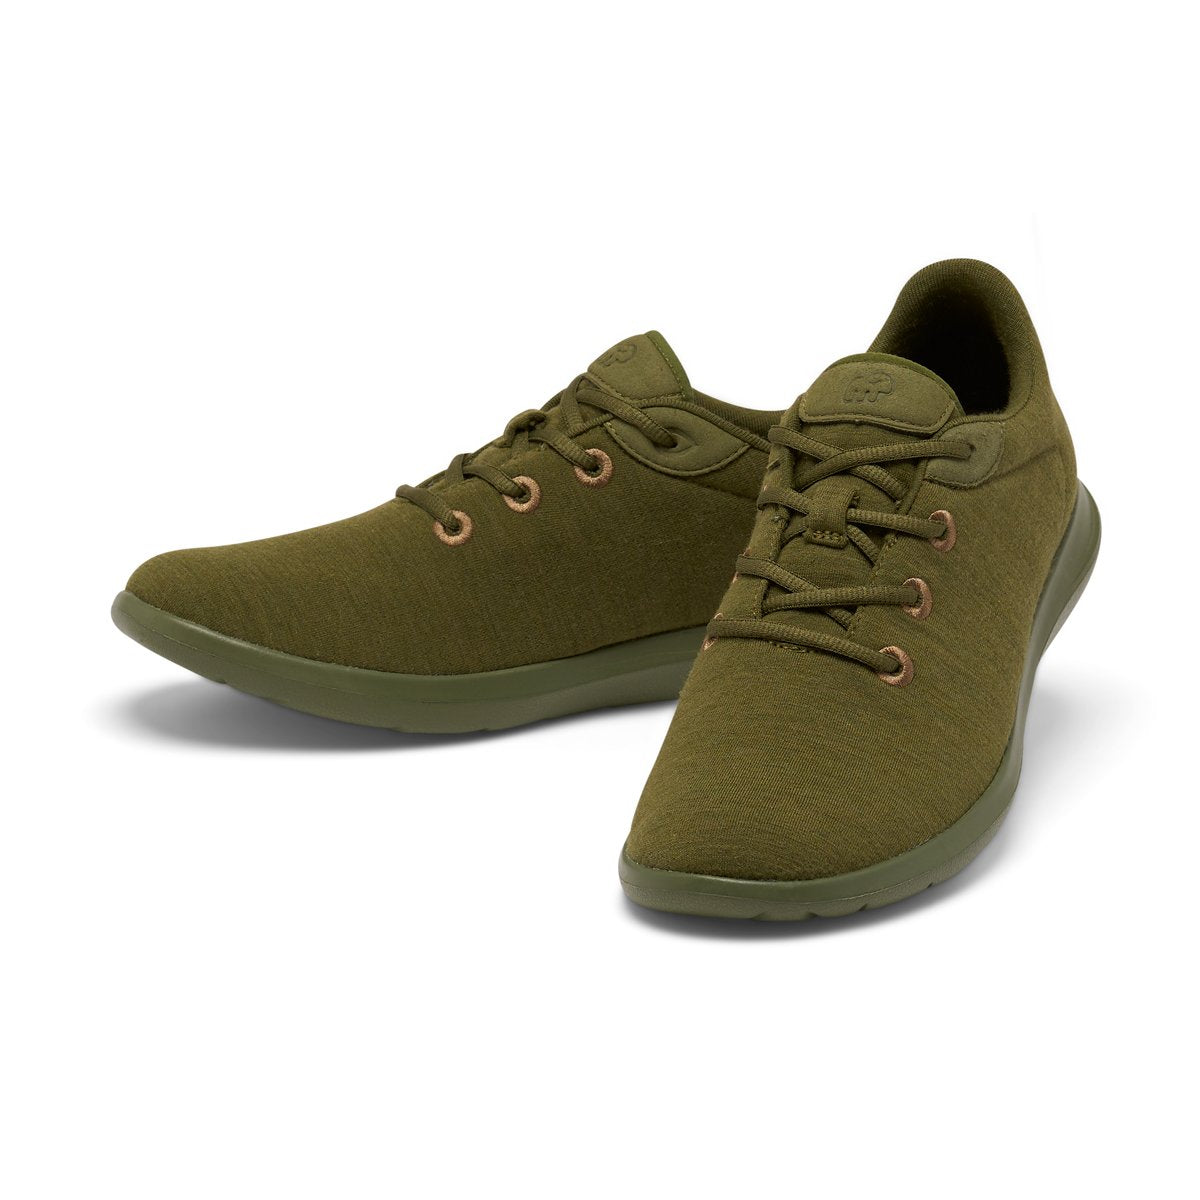 Men's Lace-Ups Olive Green